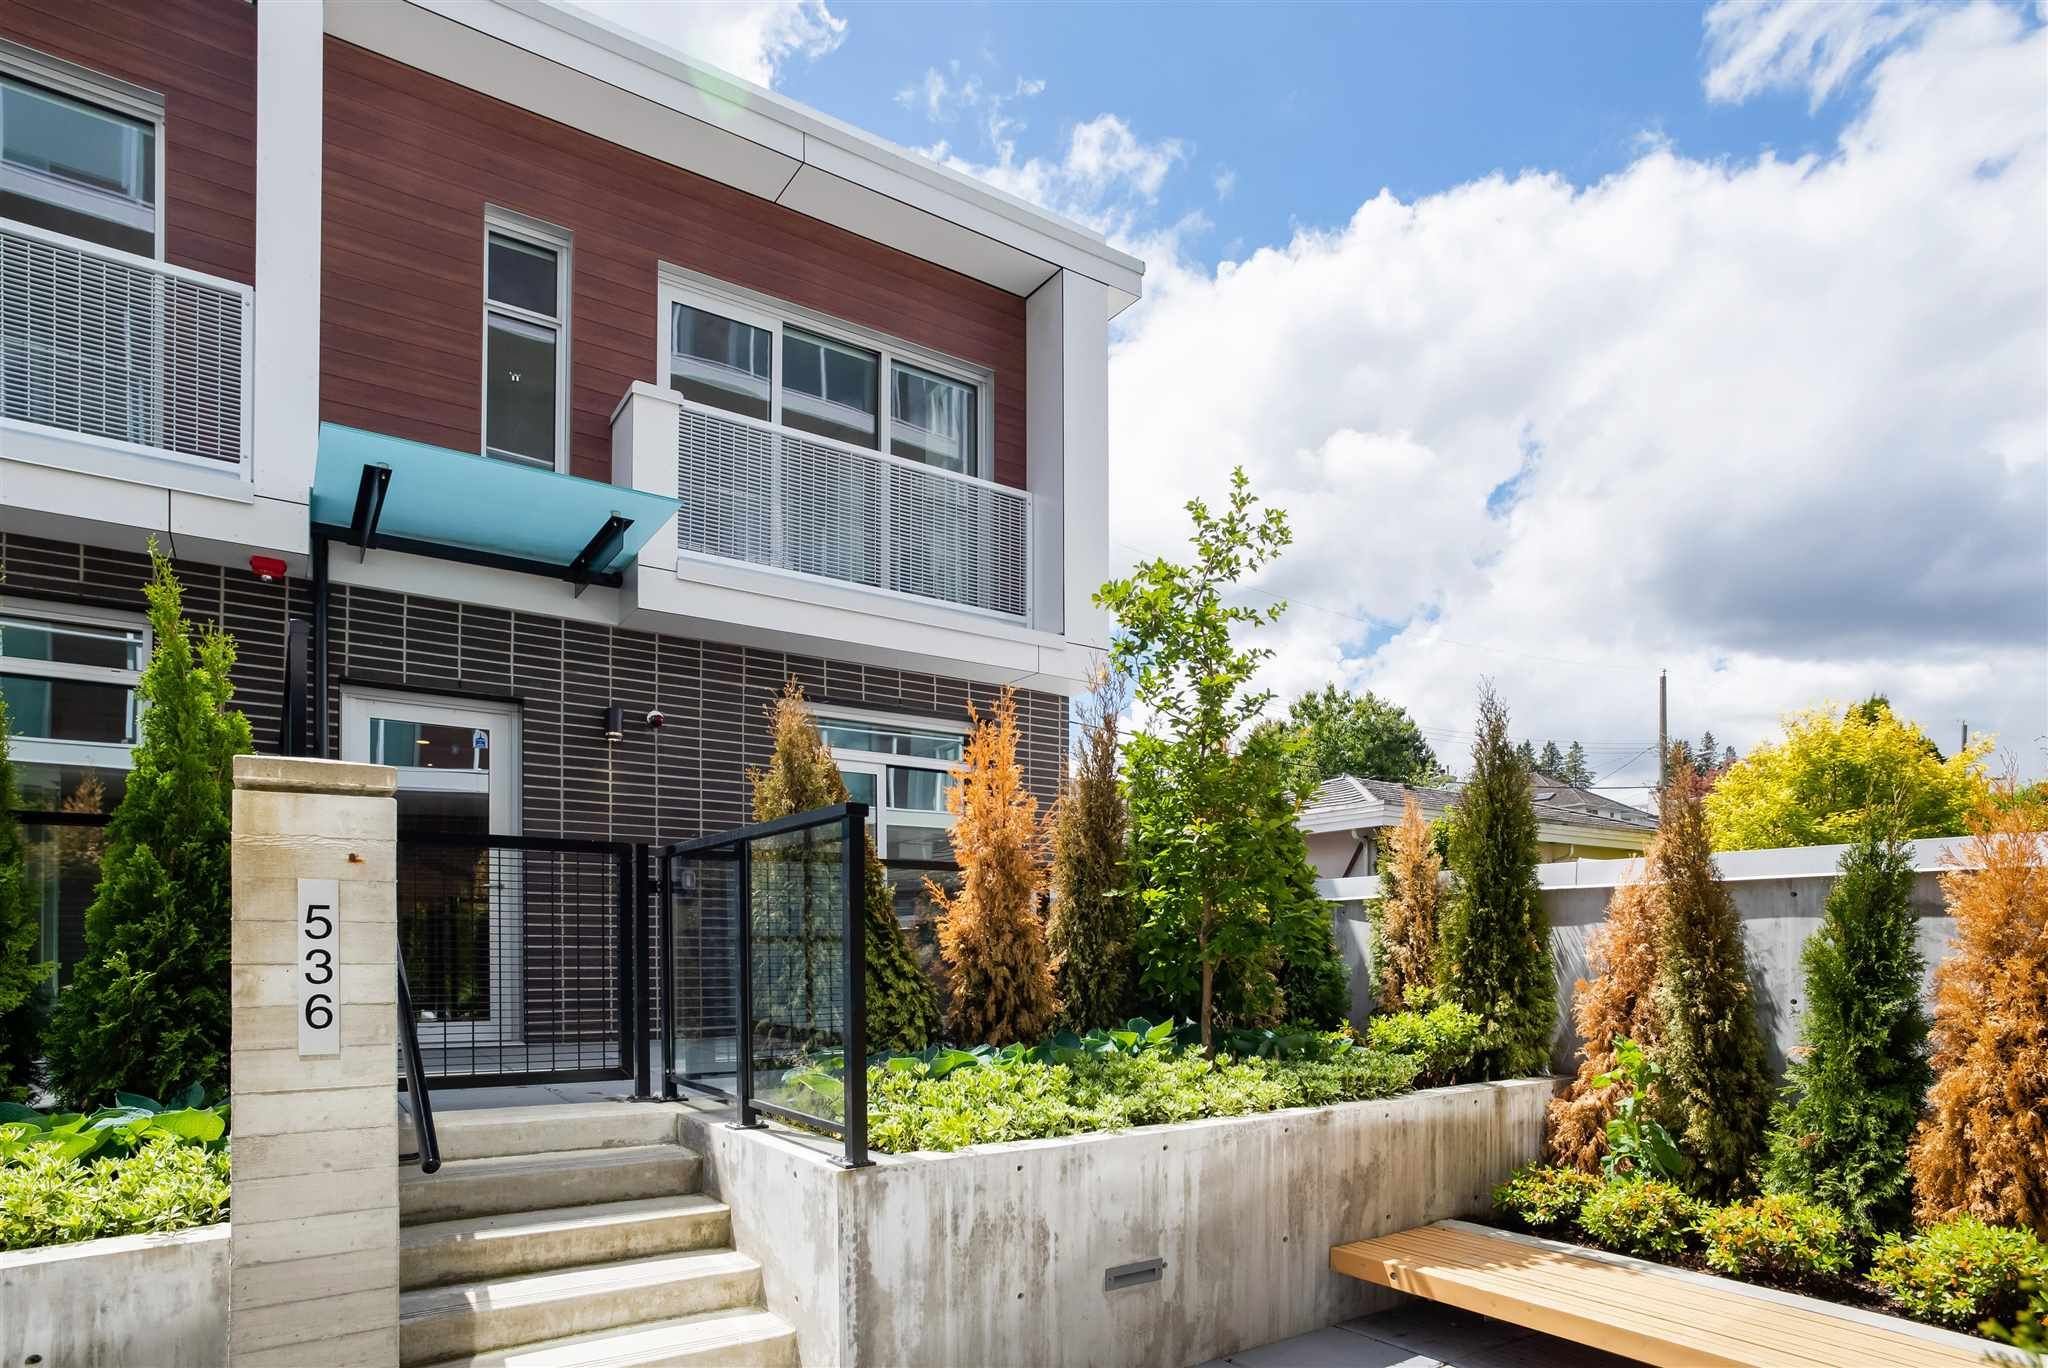 """Main Photo: 536 W KING EDWARD Avenue in Vancouver: Cambie Townhouse for sale in """"CAMBIE + KING EDWARD"""" (Vancouver West)  : MLS®# R2593920"""